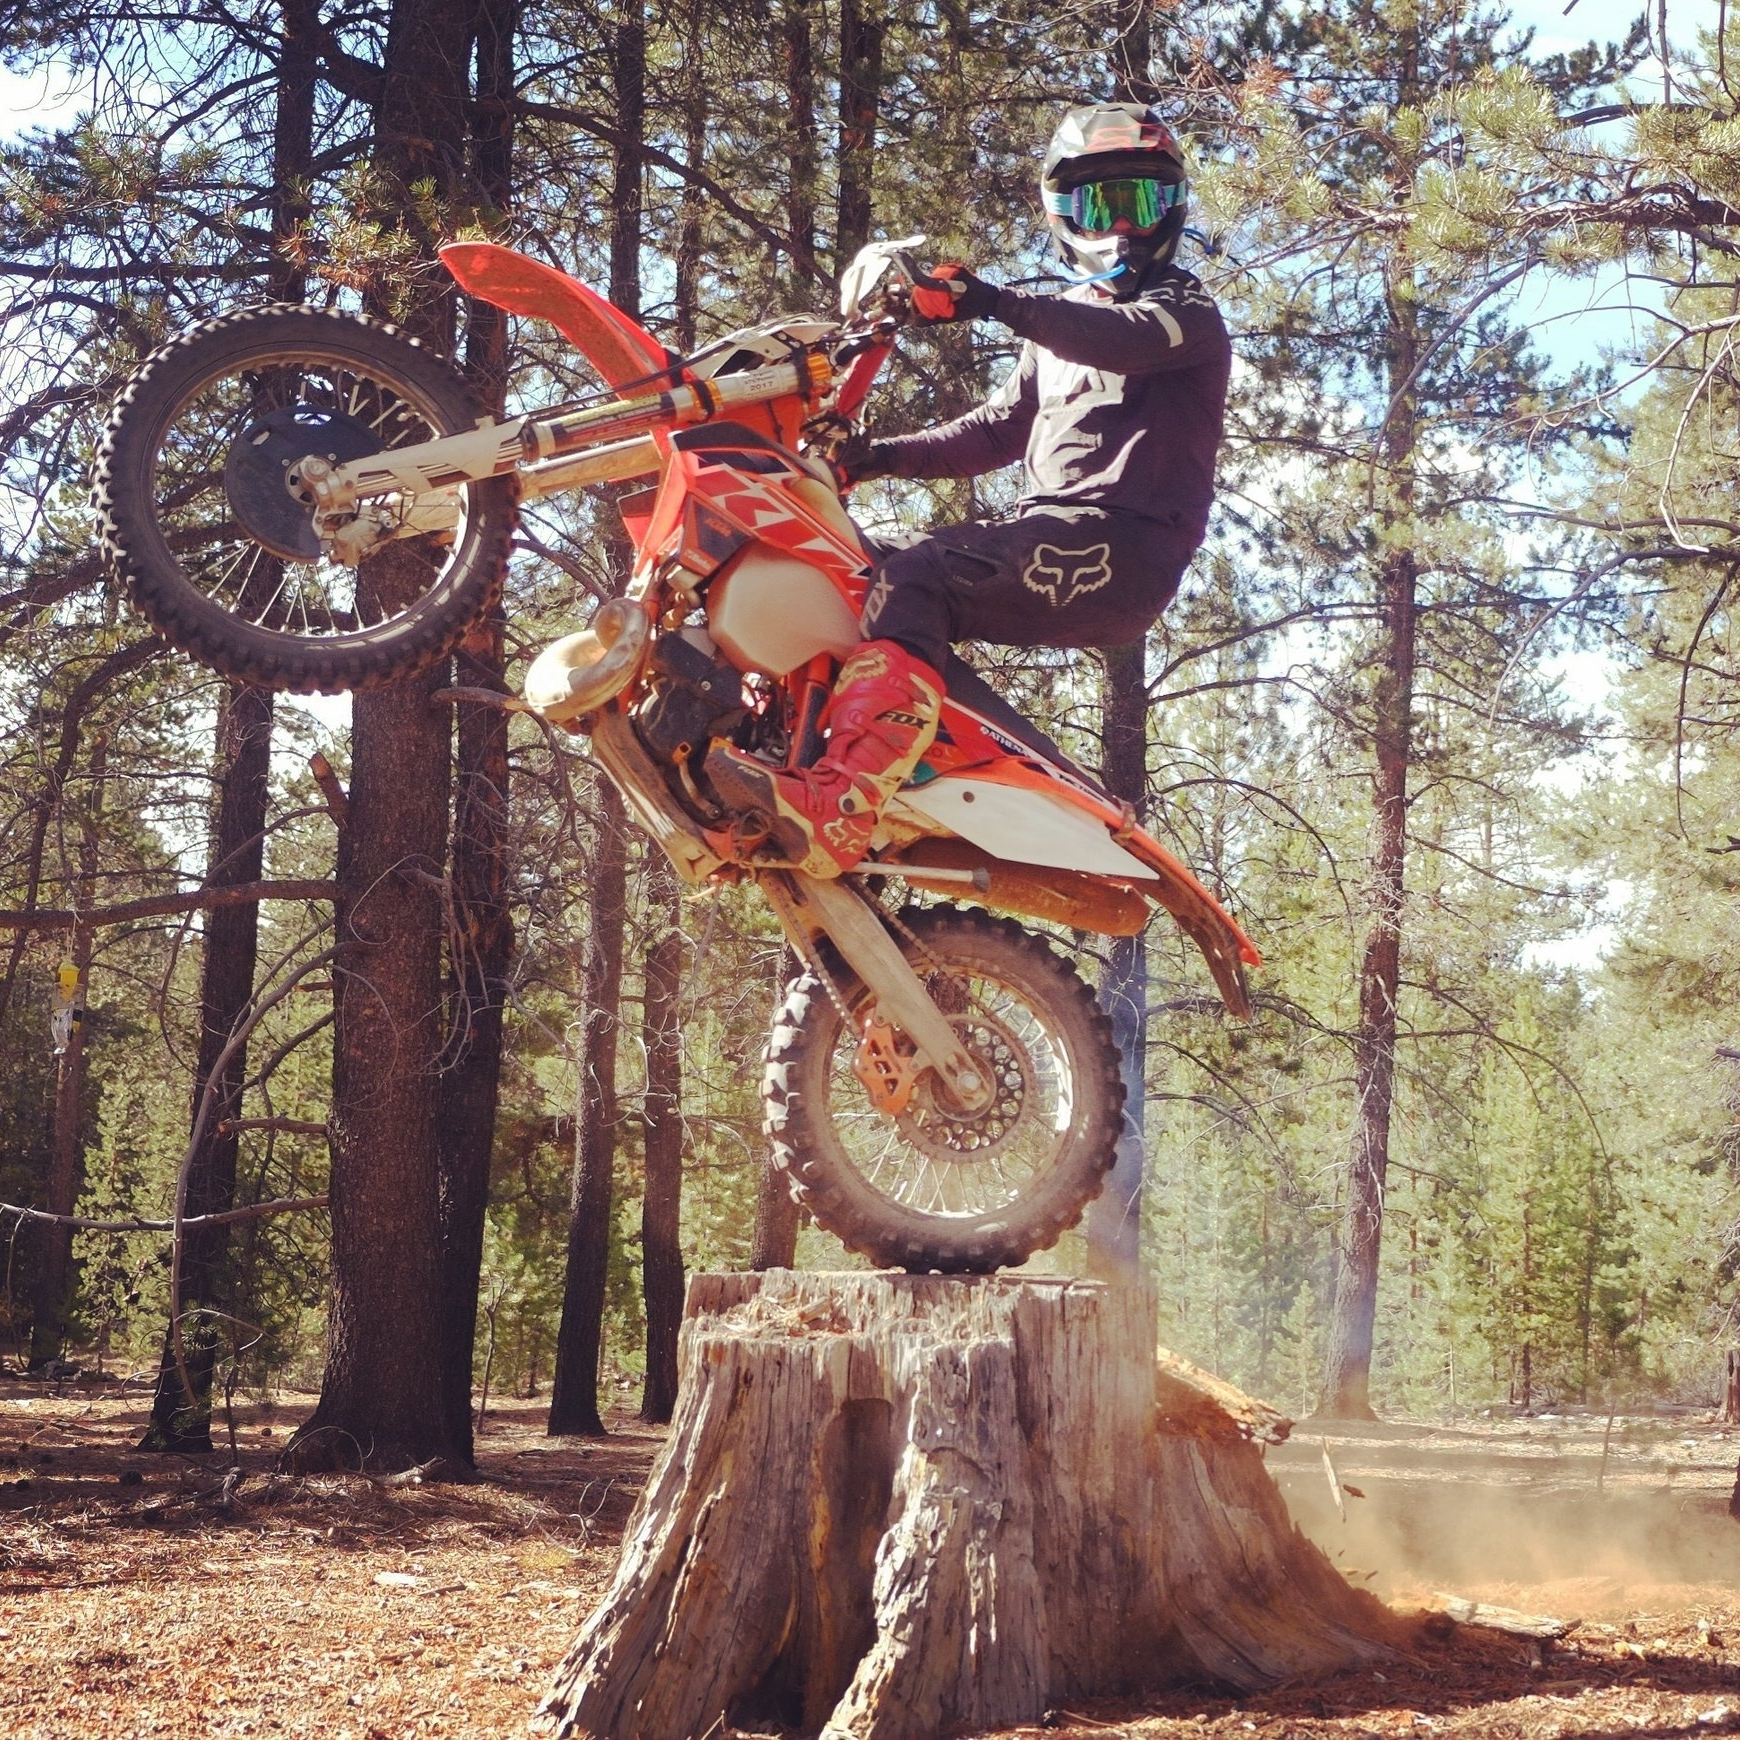 travis gardner member  Hailing from SoCal, but having happily transformed into a native Northwesterner long ago, Travis is not afraid to hang a leg out. Having earned the Pacific Northwest Vintage Motocross championship for 250 machines, he is skilled at finding the elusive traction tolerances of most any surface. Whether on a motorcycle or not, he specializes in powerbanding.